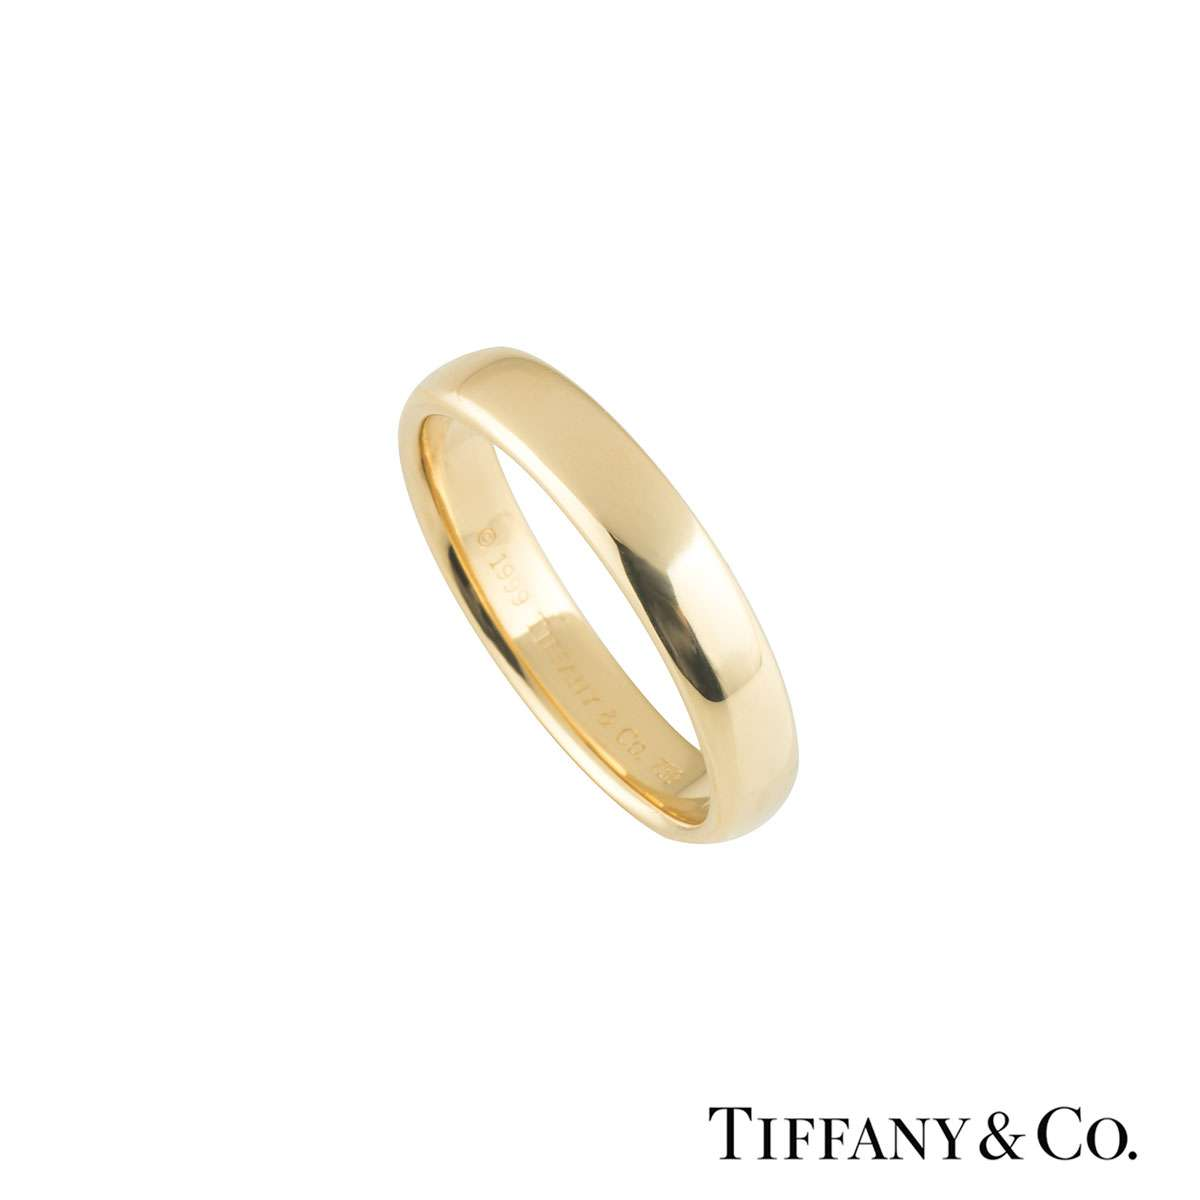 Tiffany & Co. Yellow Gold Elsa Peretti Stacking Band Ring